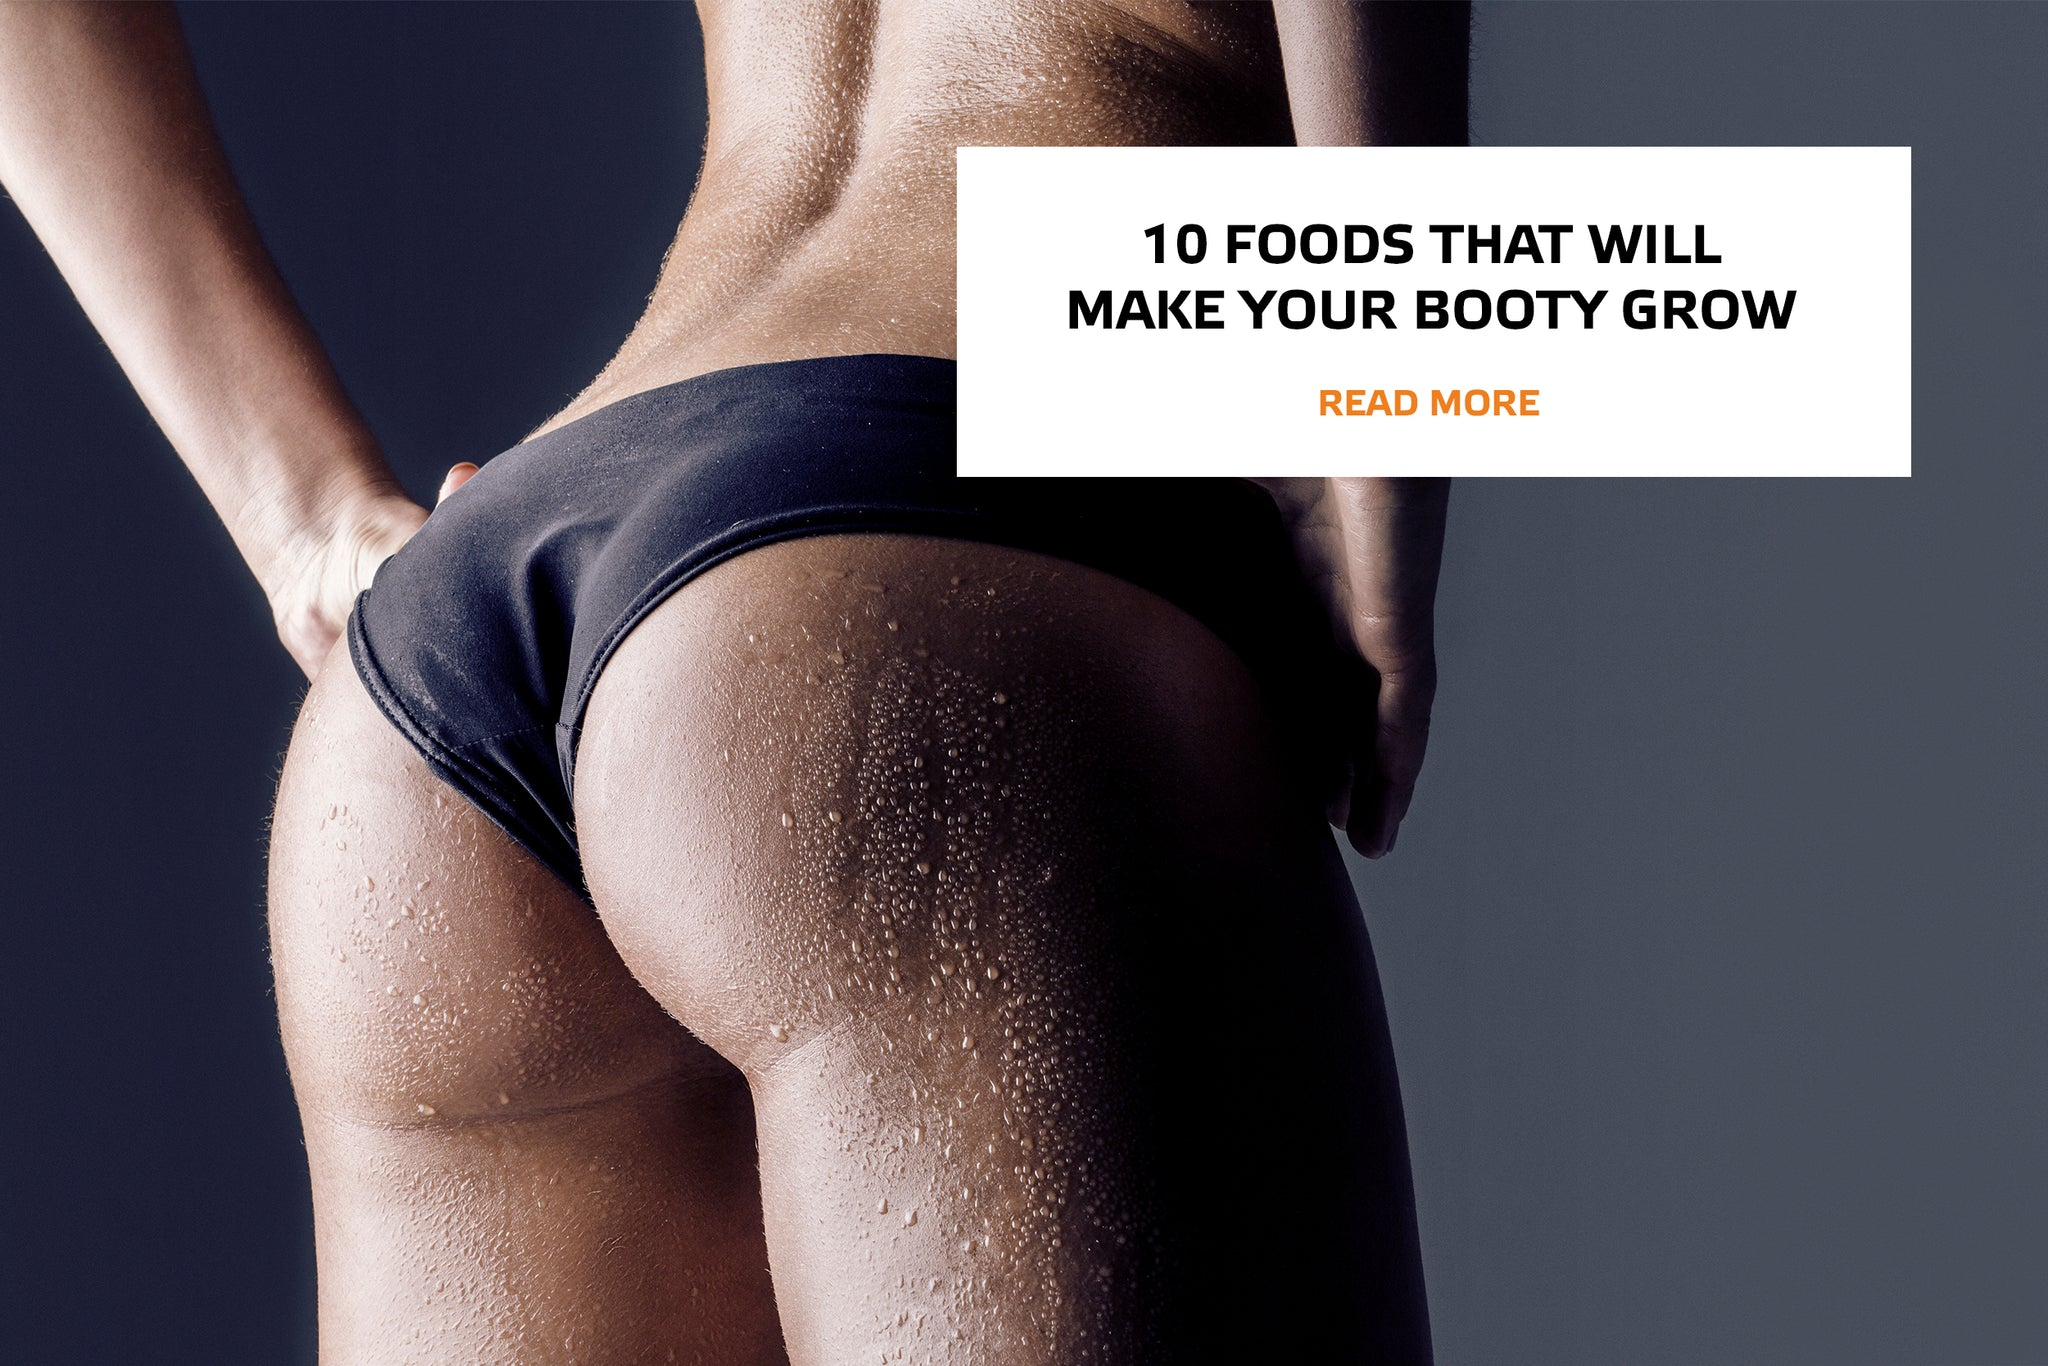 Ten foods that will make your booty grow